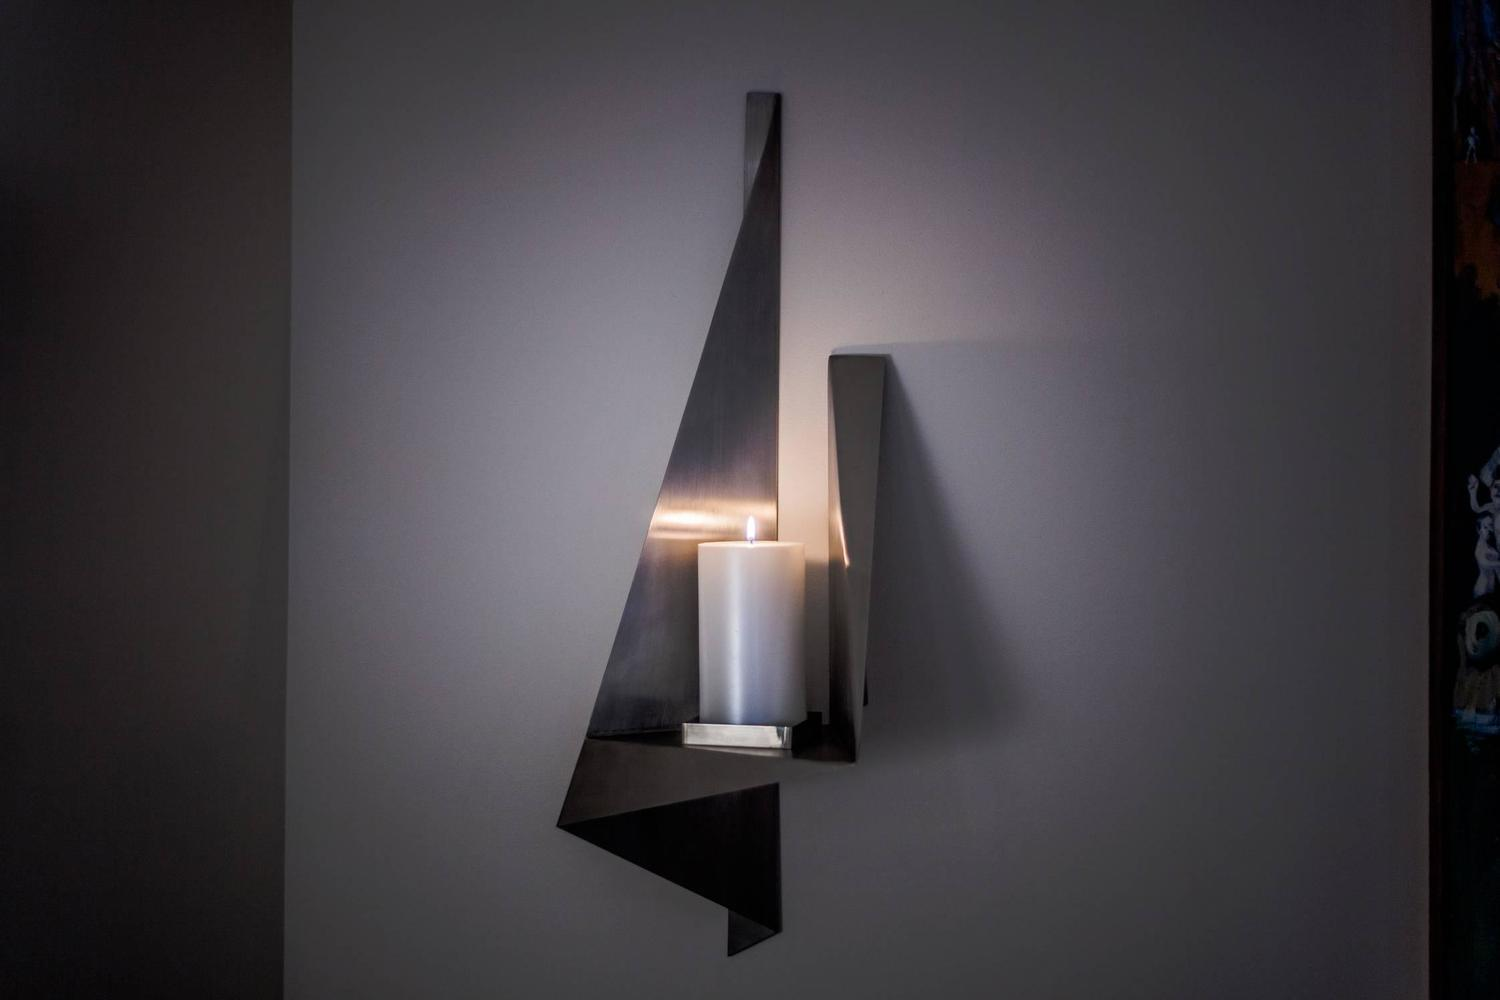 Large Candle Wall Sconce, Custom Stainless Steel, USA ... on Large Wall Sconces Candle Holders Decorative id=15001